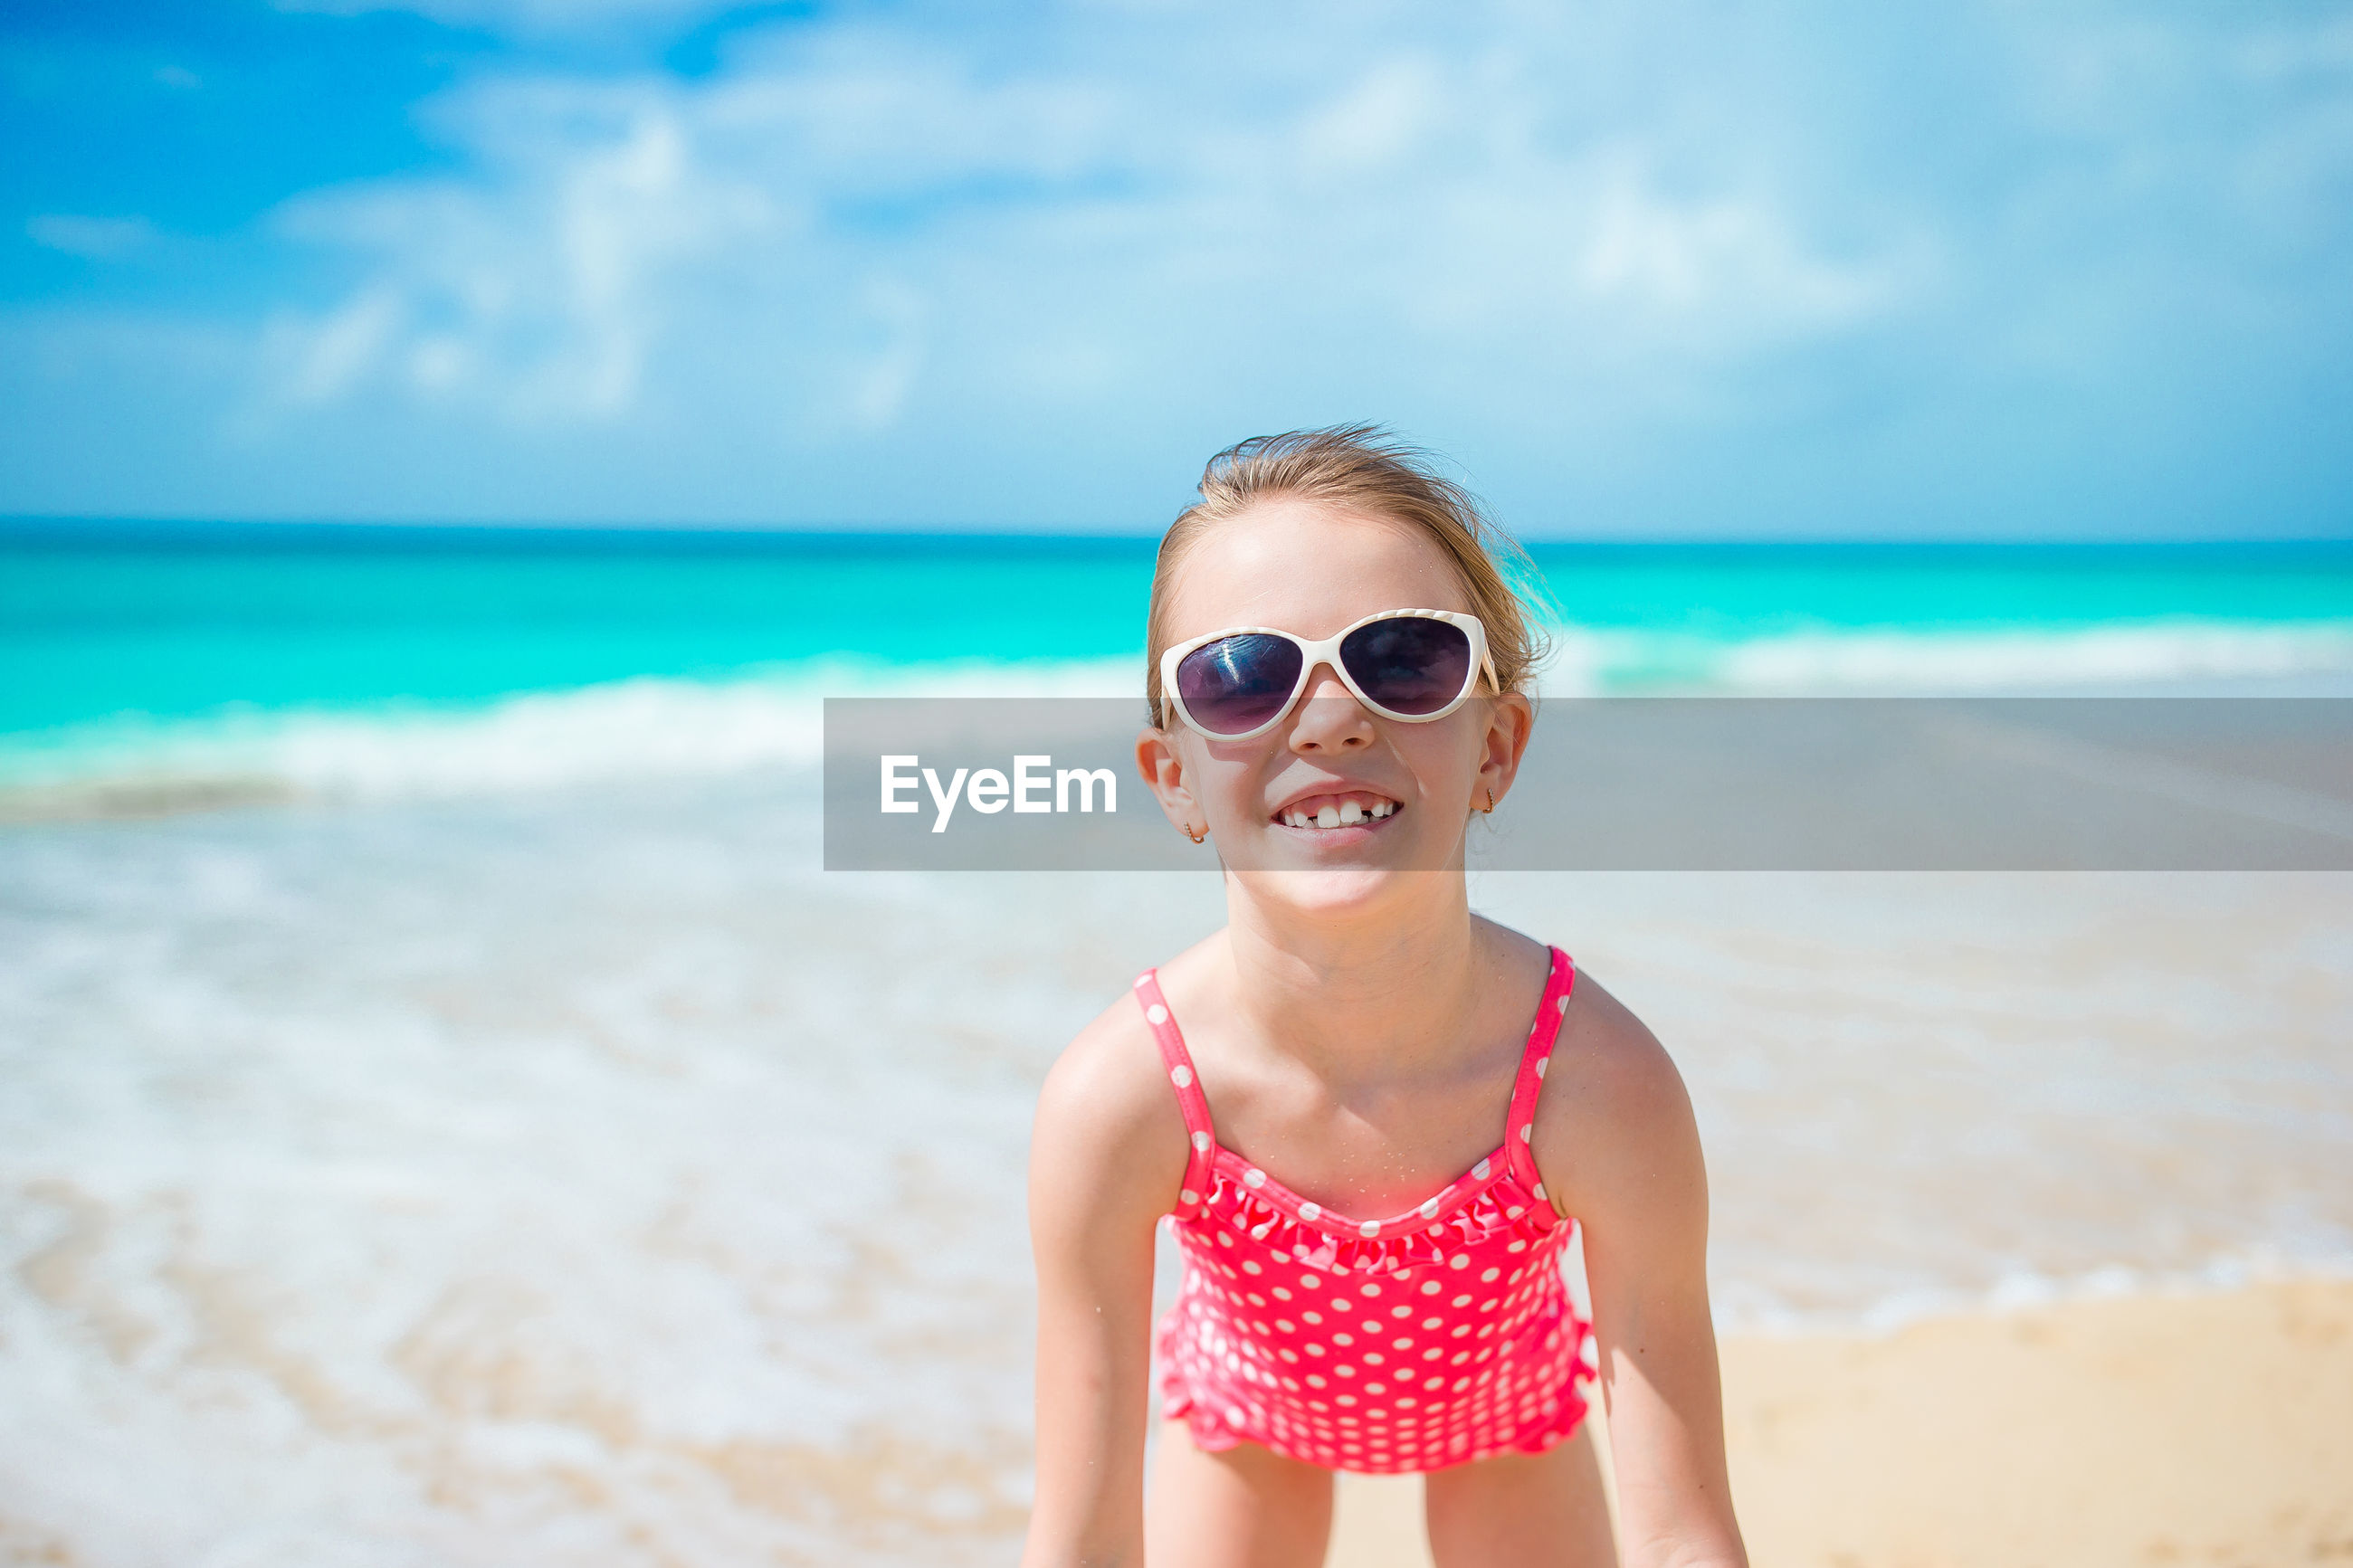 PORTRAIT OF BOY WEARING SUNGLASSES AT BEACH